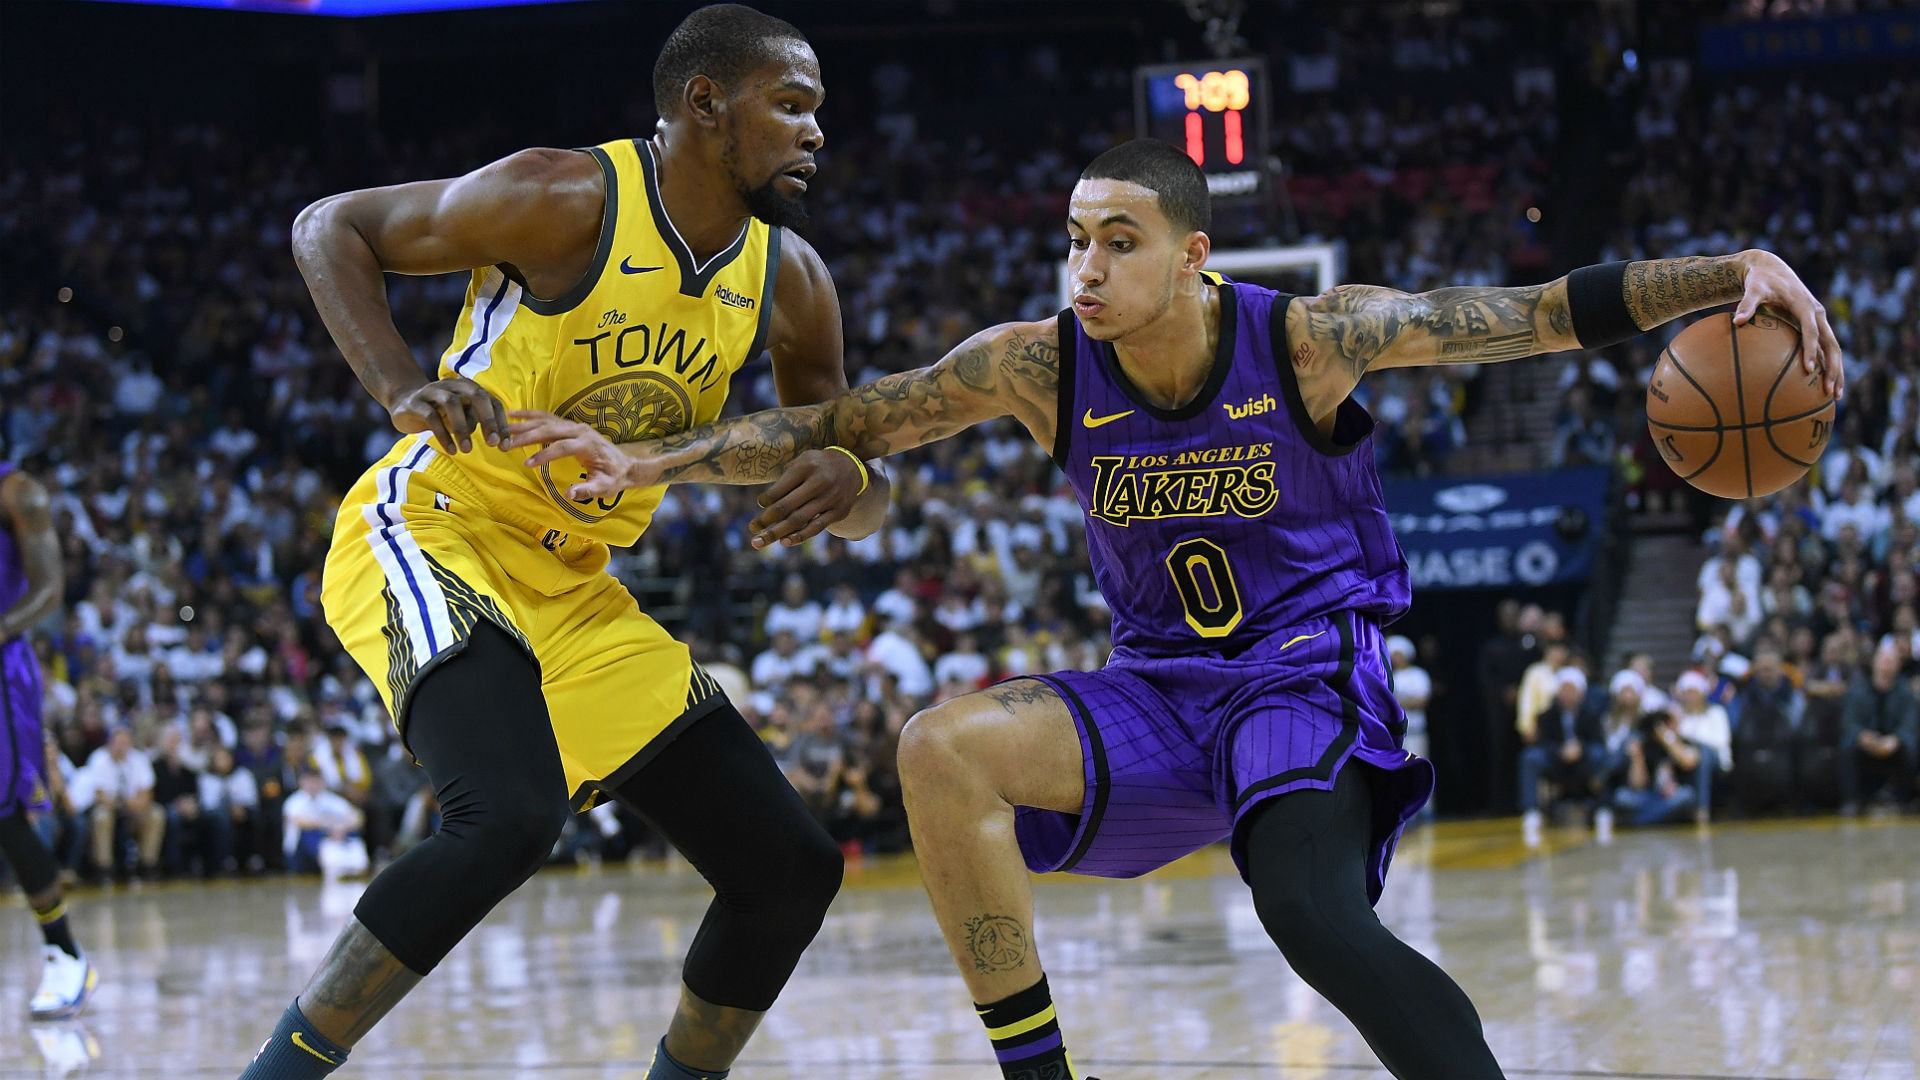 Lakers Vs Warriors Results Score Highlights From Los Angeles Stunning Victory